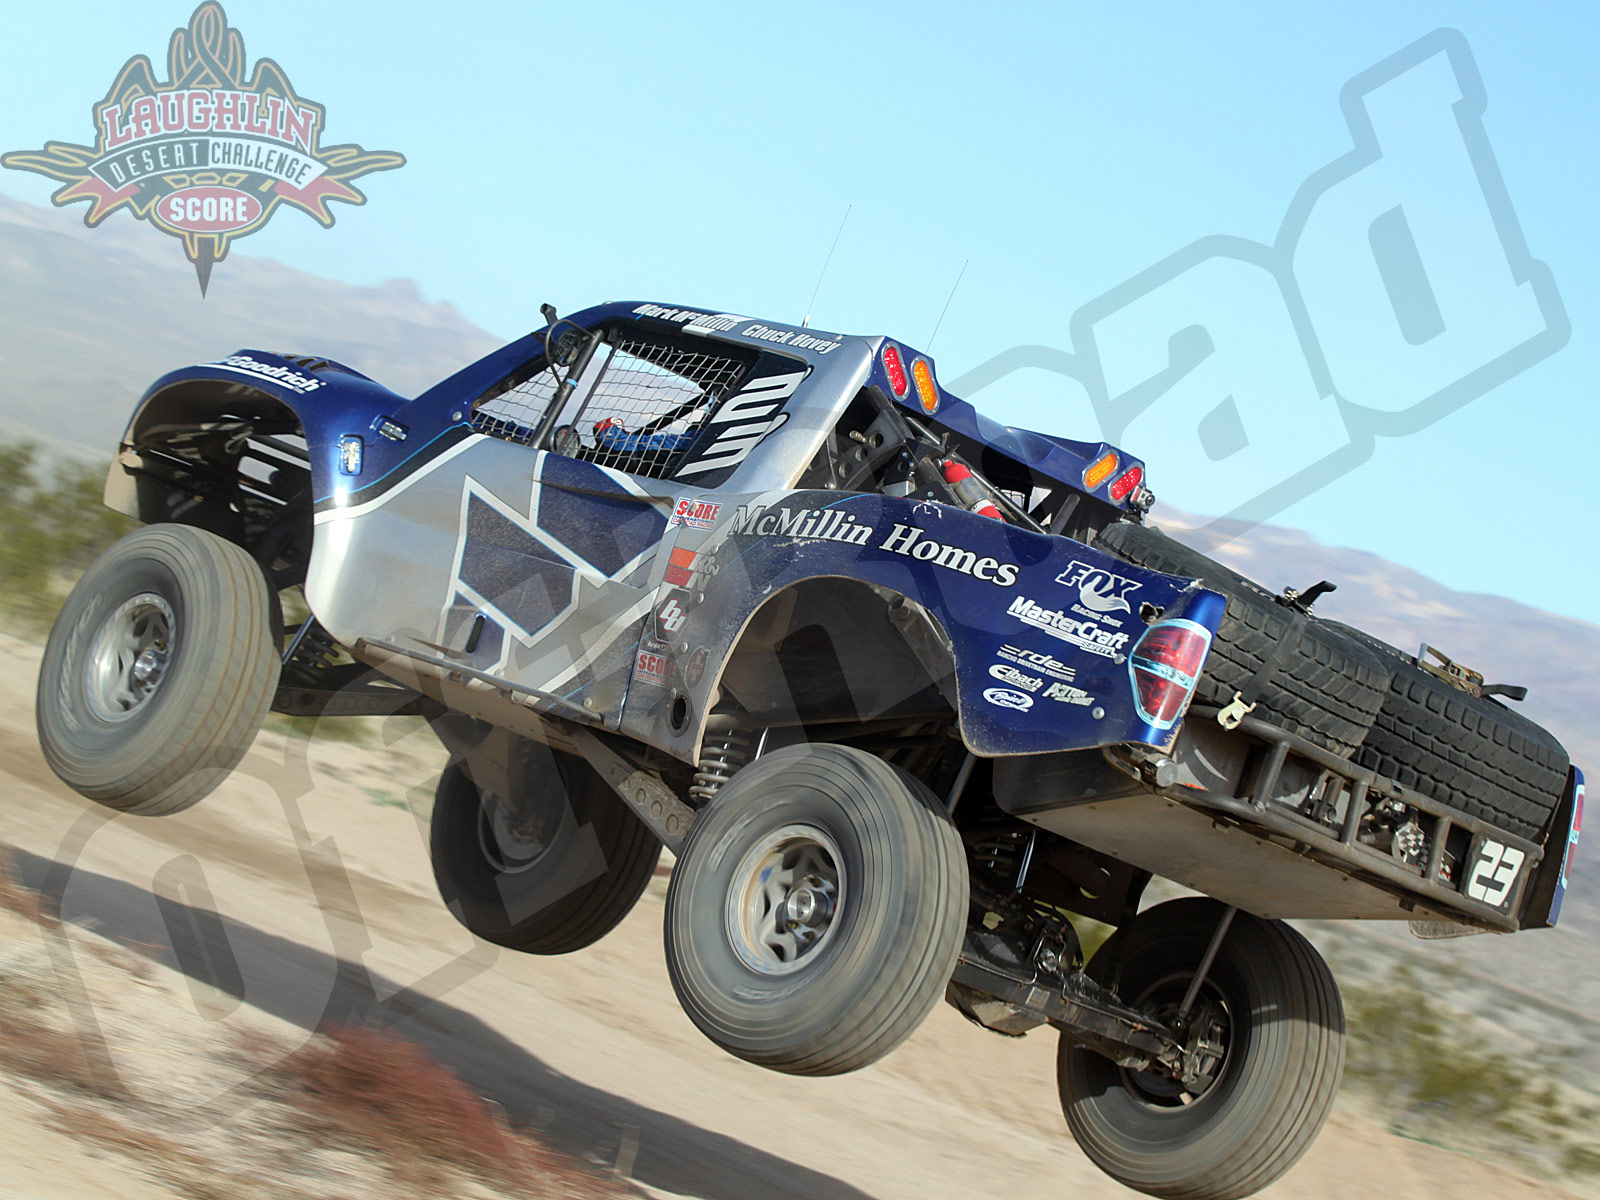 030311or 6814+2011 score laughlin desert challenge+trophy trucks sunday